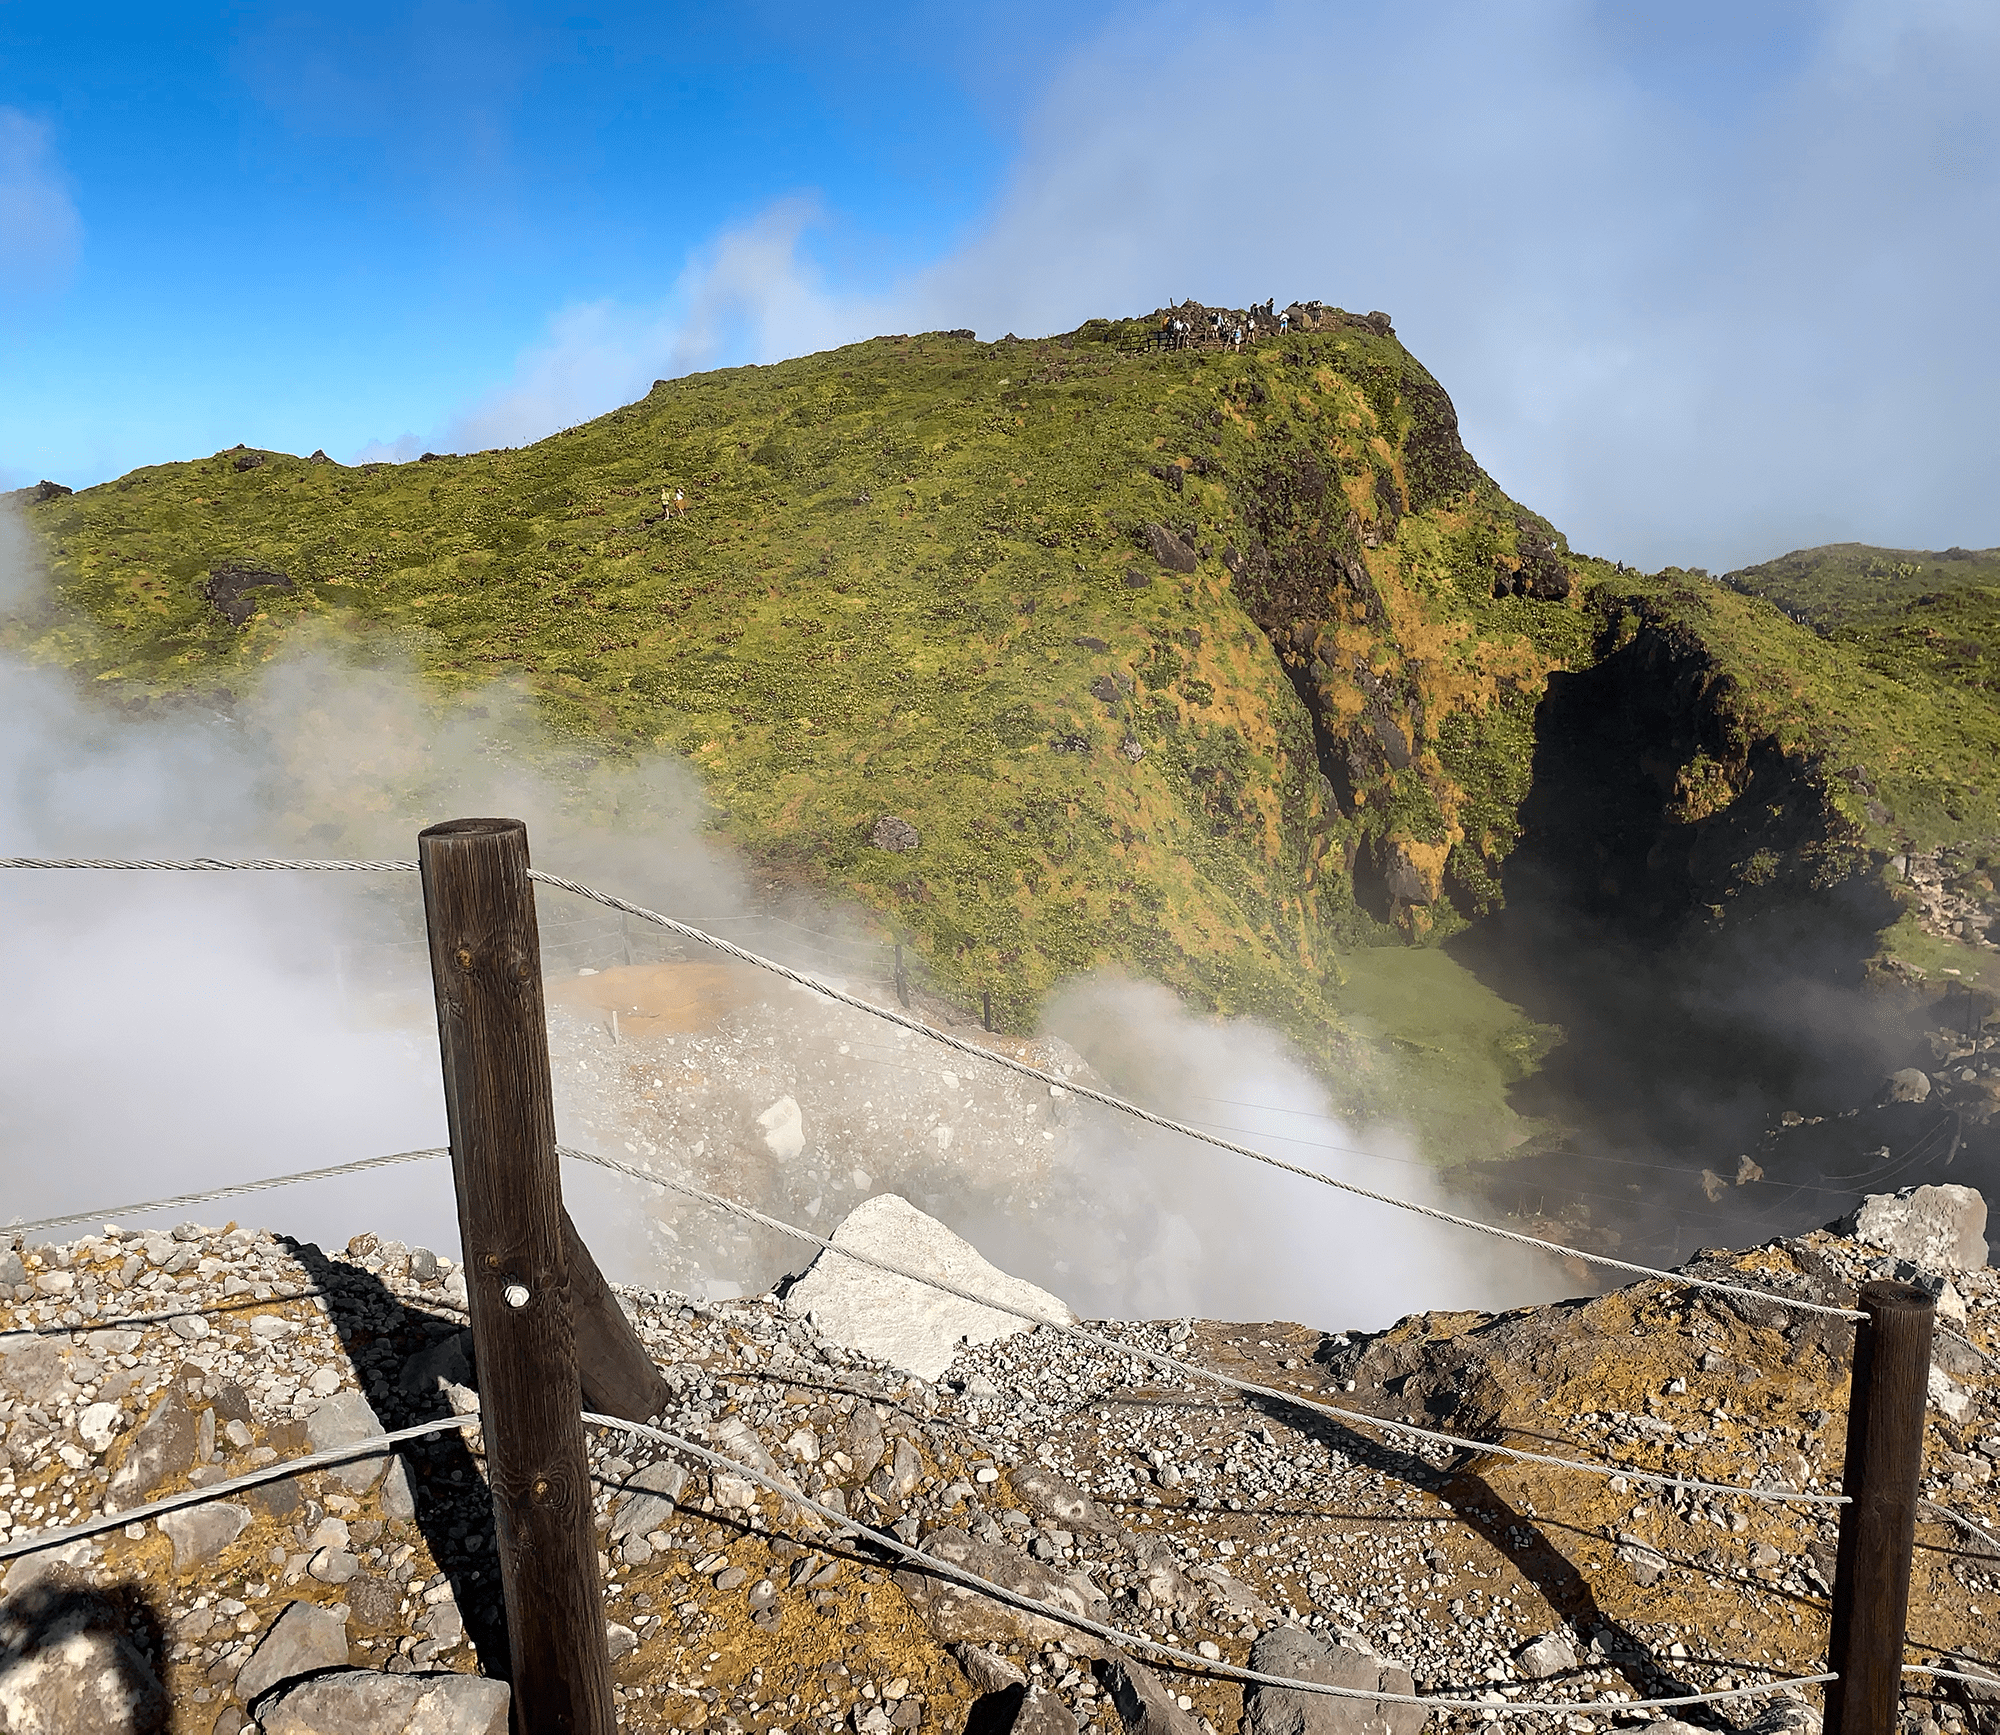 sommet-soufriere-basse-terre-guadeloupe